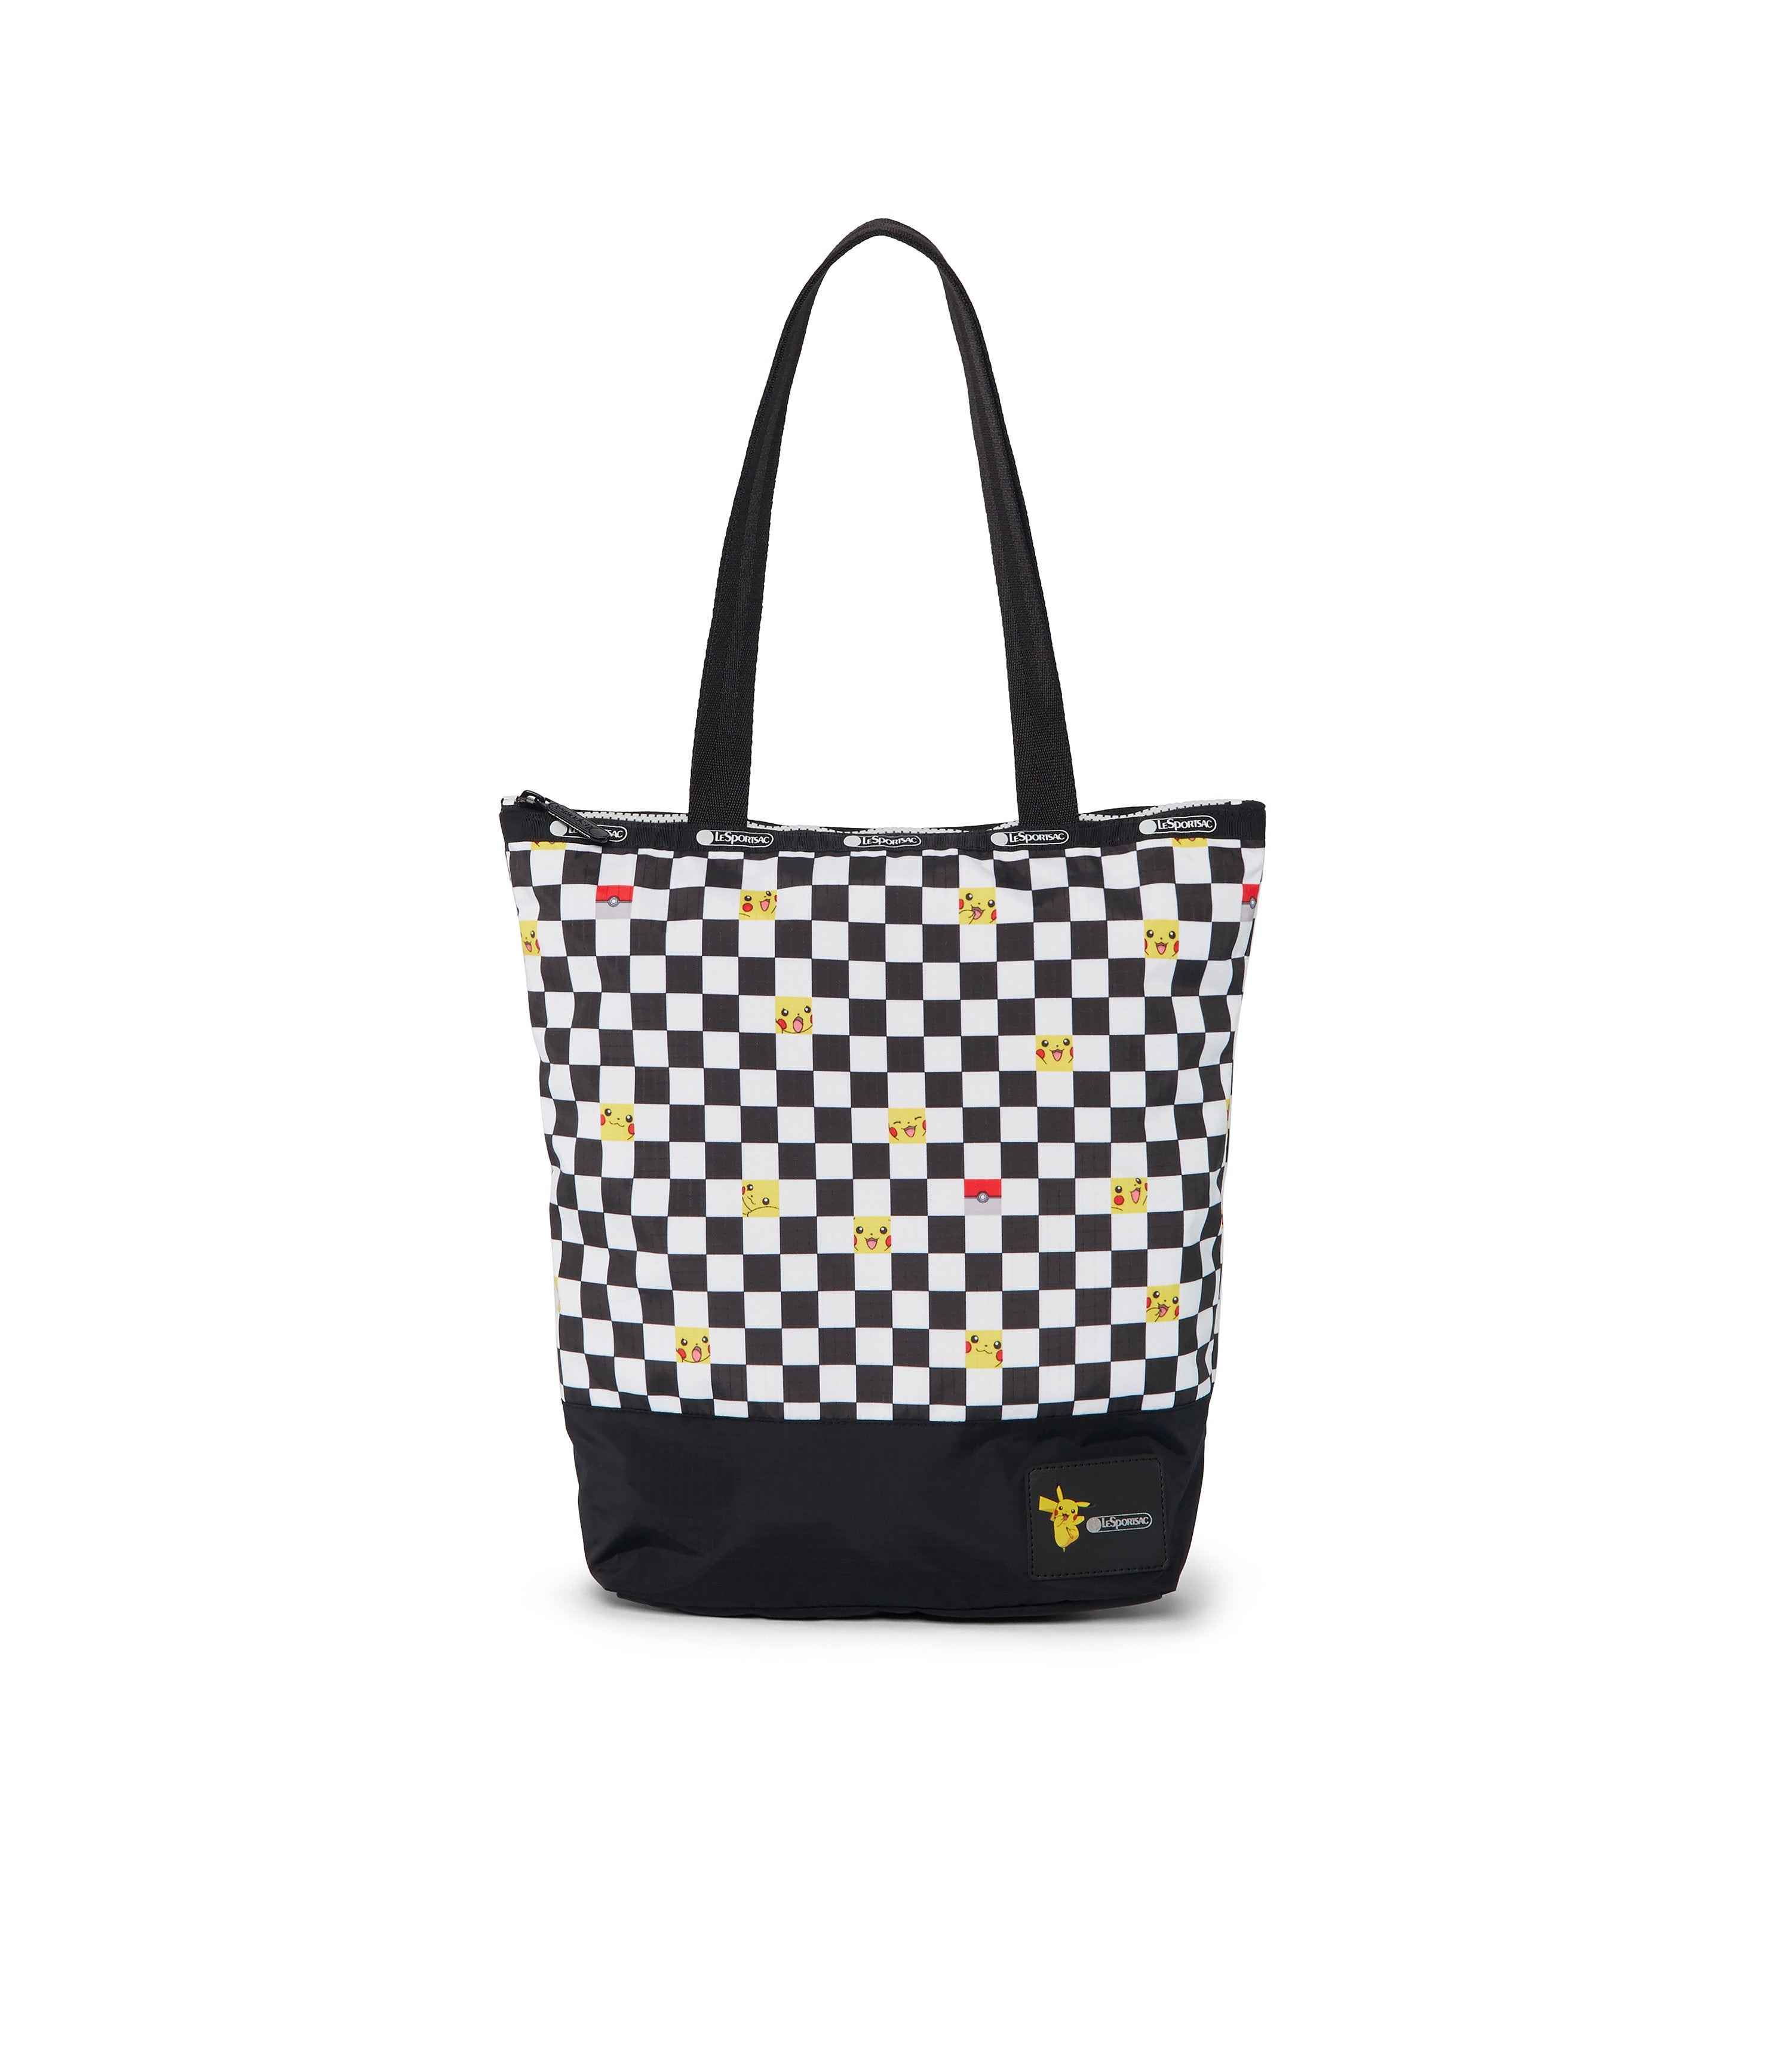 Pokémon Blocked Daily Tote-LeSportsac-Medium-Tote-checkered-front